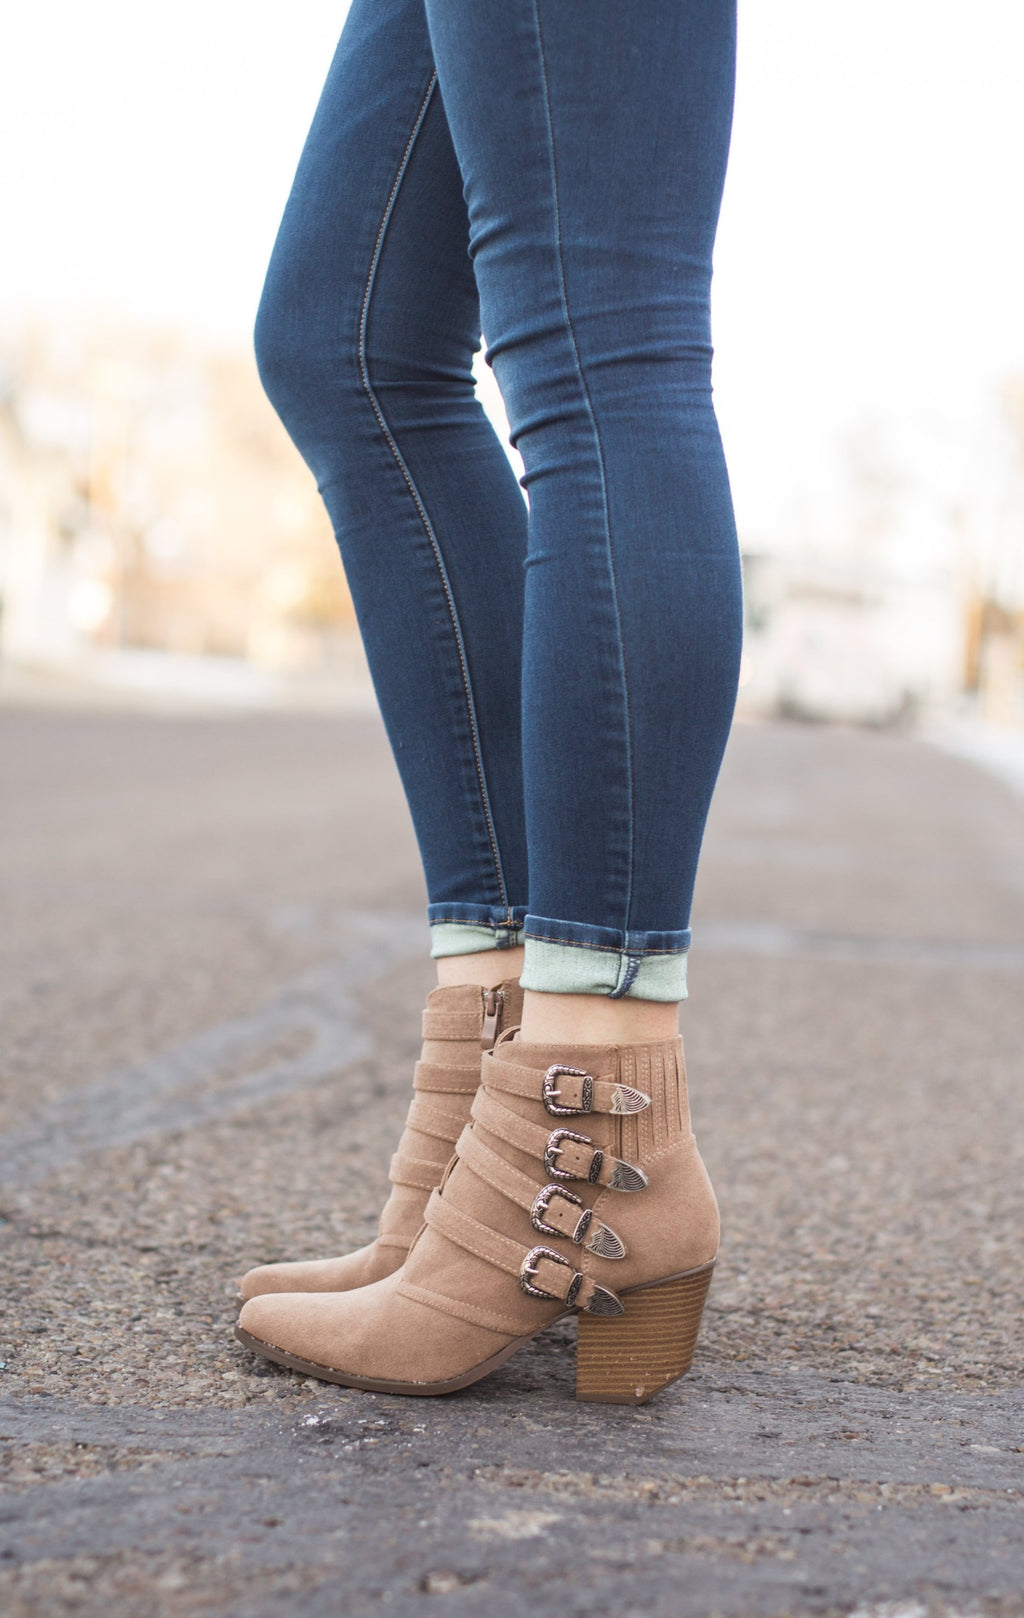 The Savannah Boots